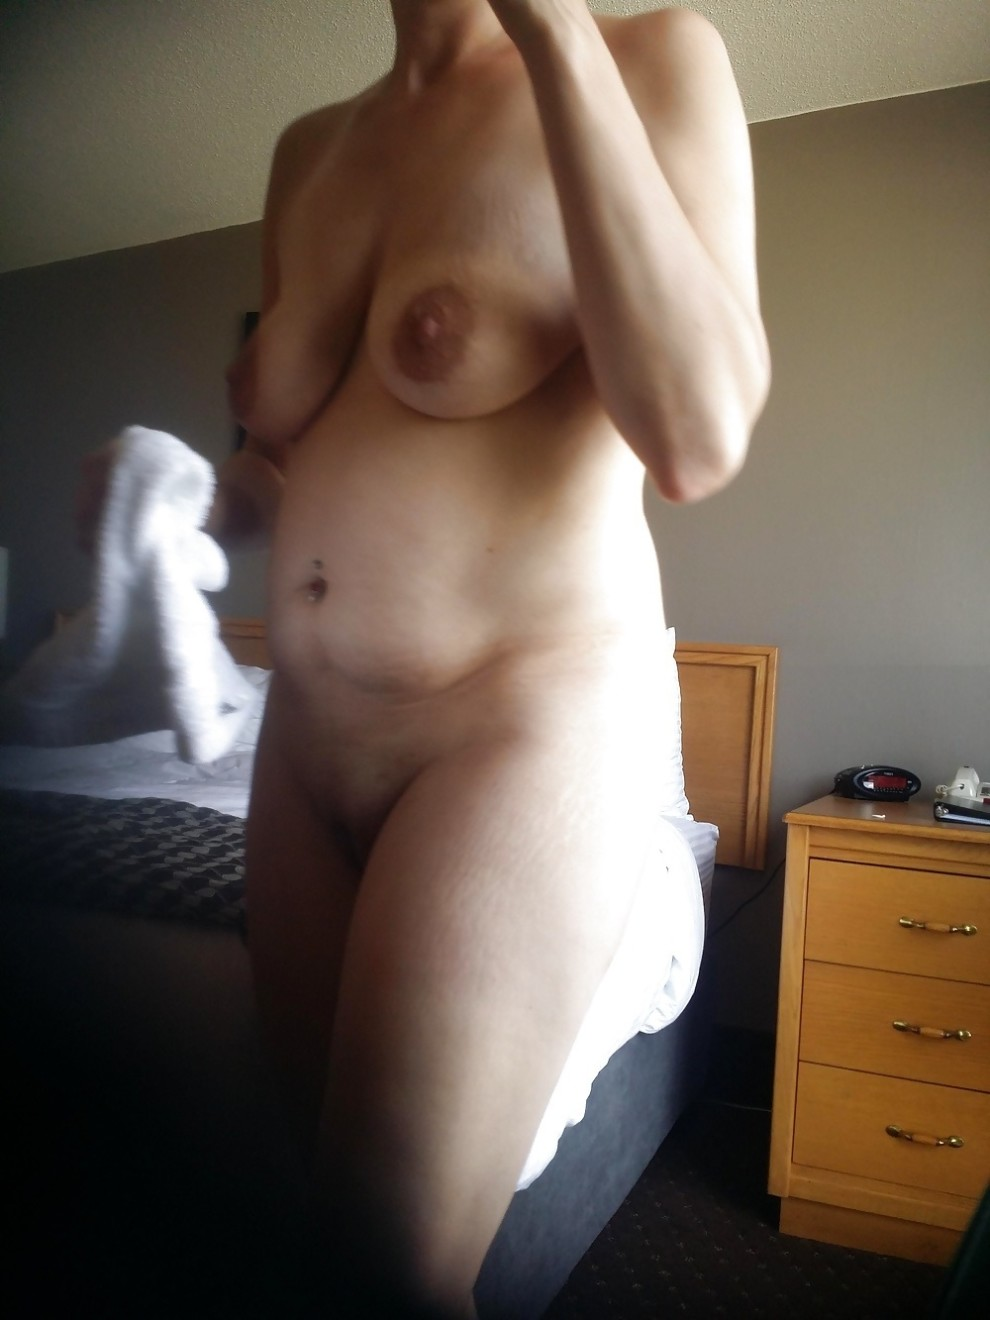 Anyone like big milf nipples?